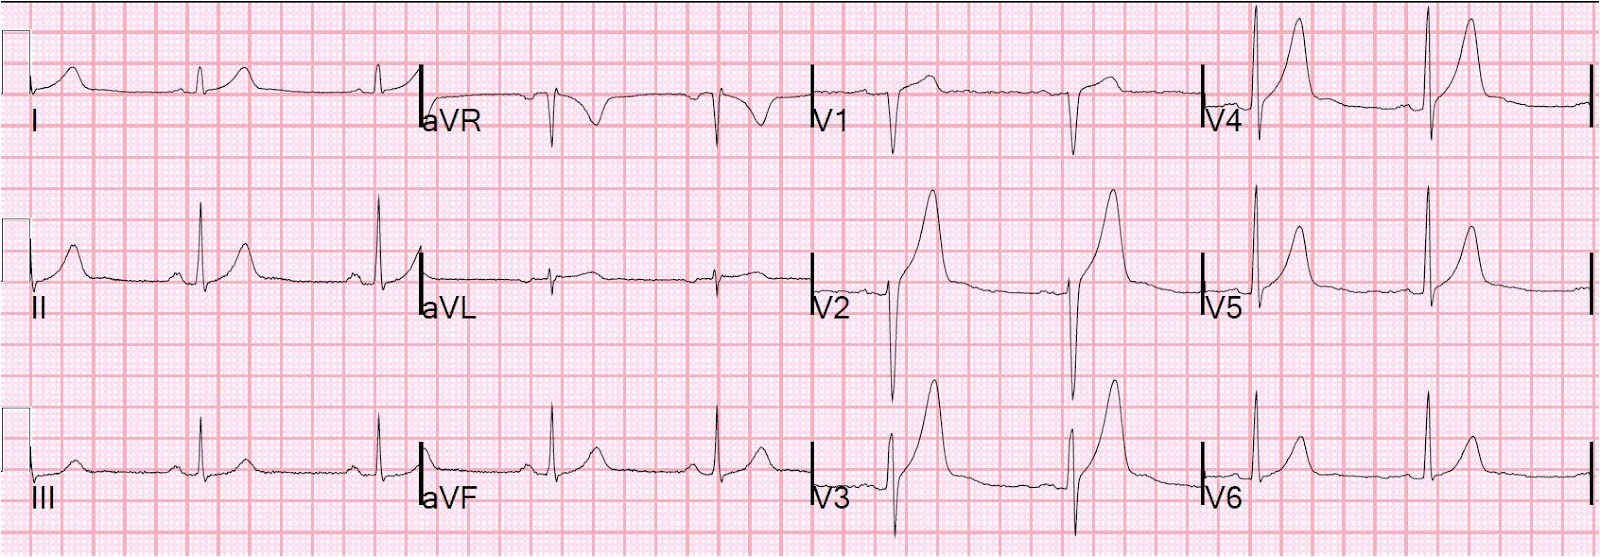 Dr. Smith's ECG Blog: Anterior ST elevation with large broad